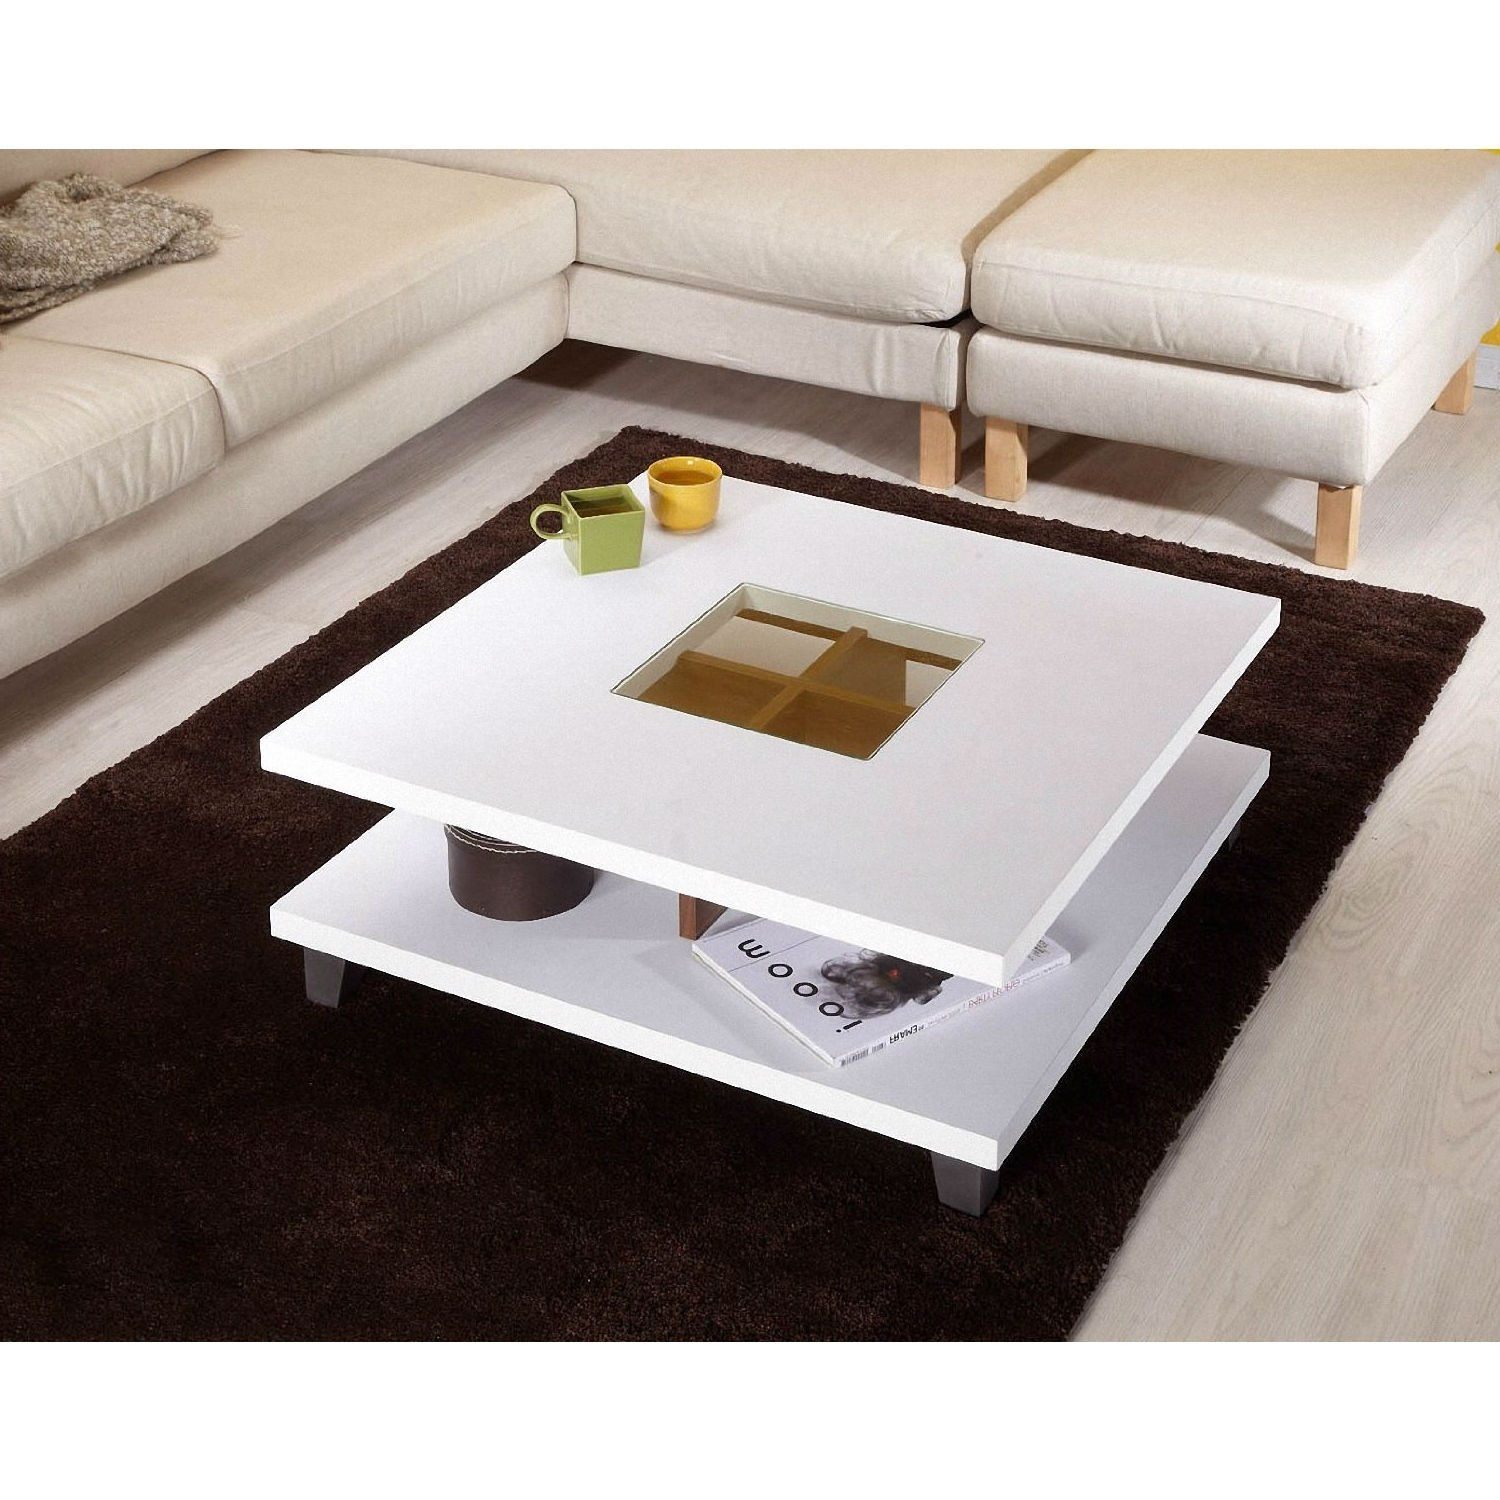 A Pure White Finish Underscores The Clean Lines Of This Modern Square Coffee Table In White Wood Fi Coffee Table Modern Square Coffee Table Coffee Table Square [ 1500 x 1500 Pixel ]